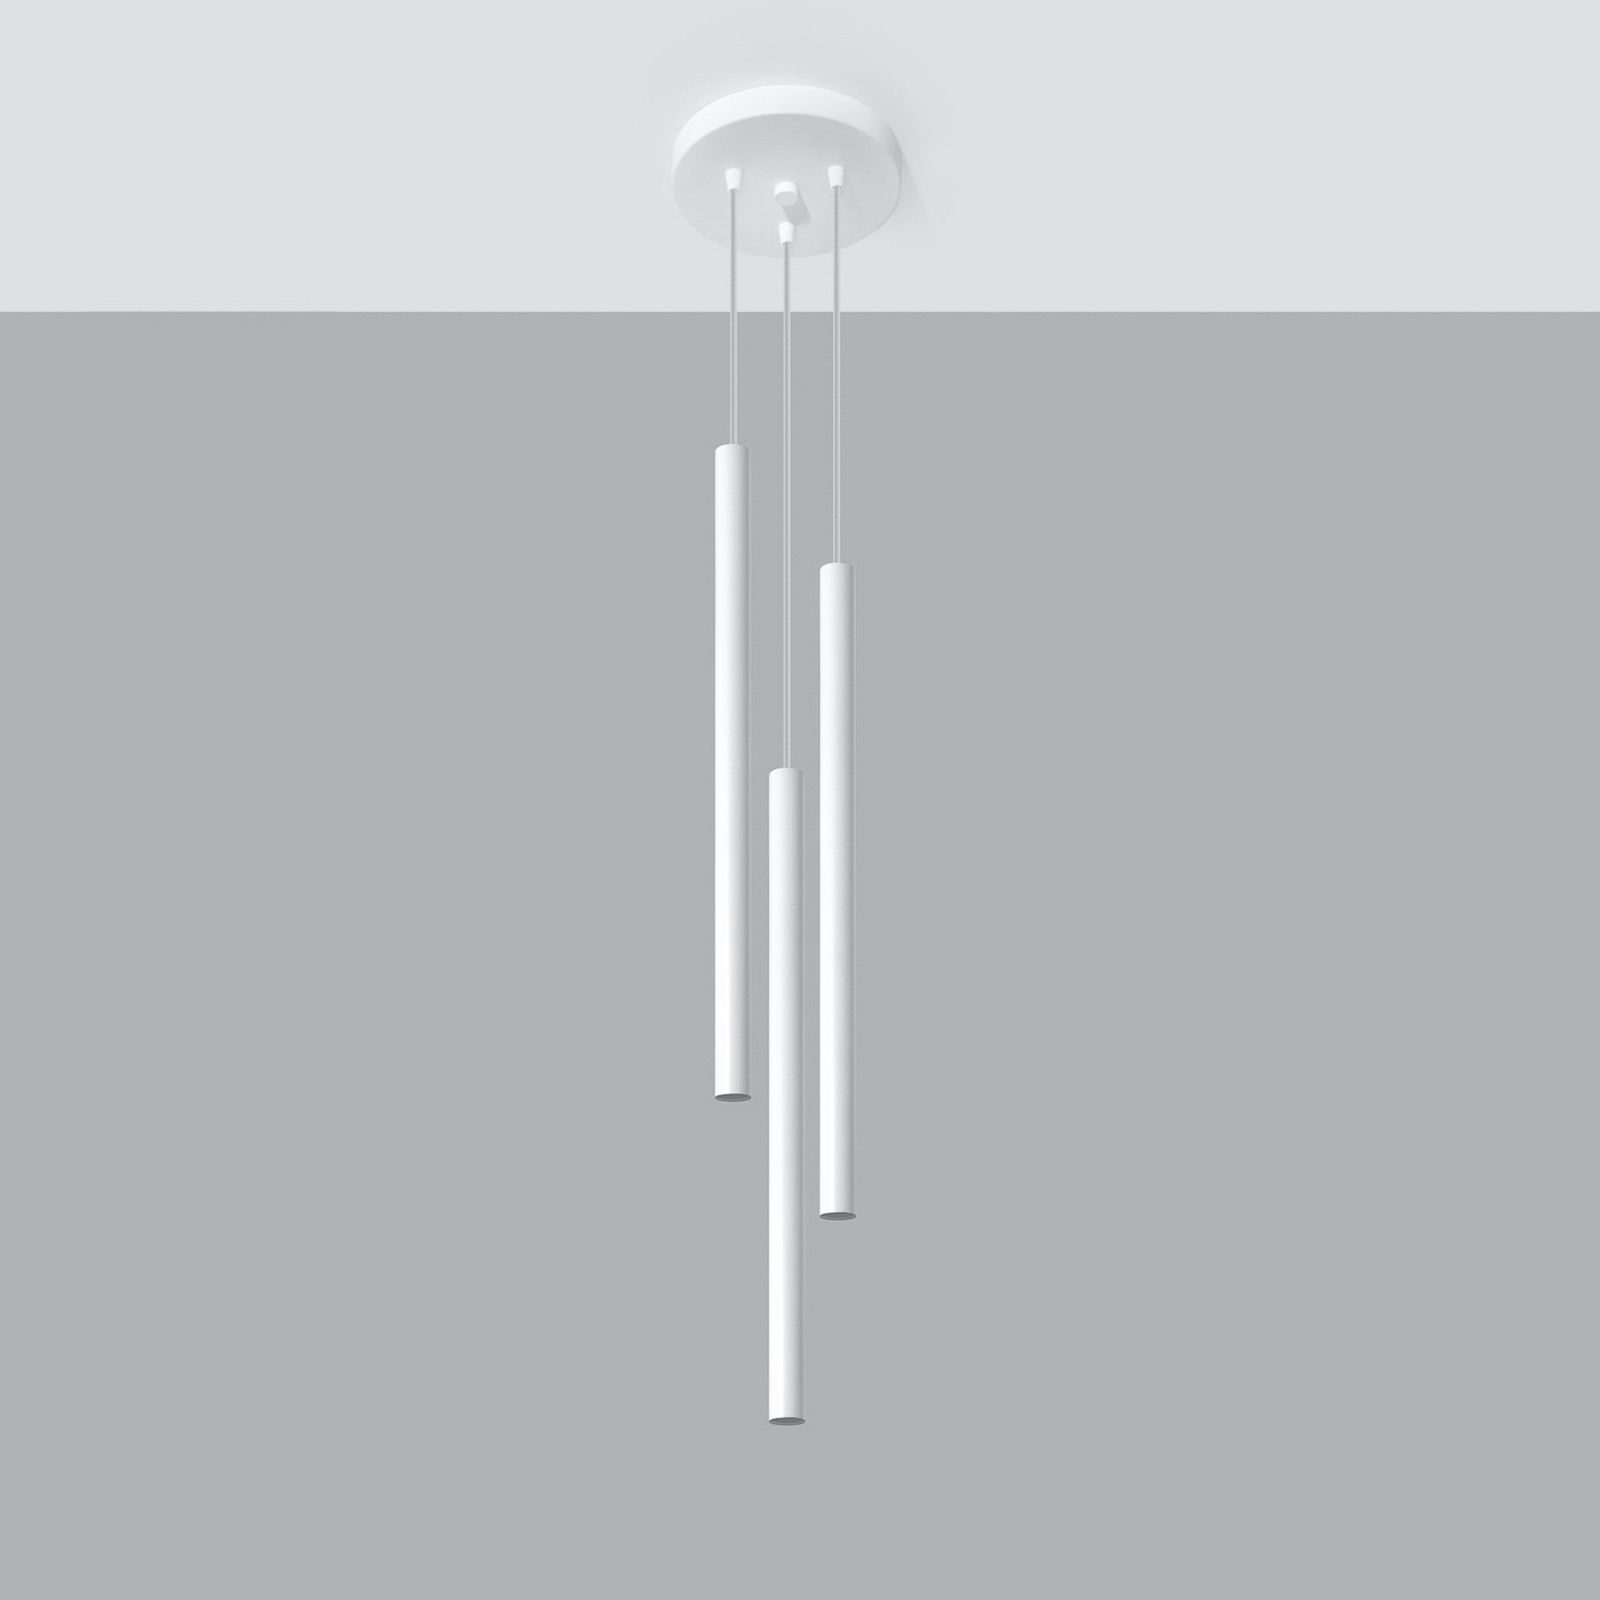 Hanglamp Thin, wit, 3-lamps, Rondell